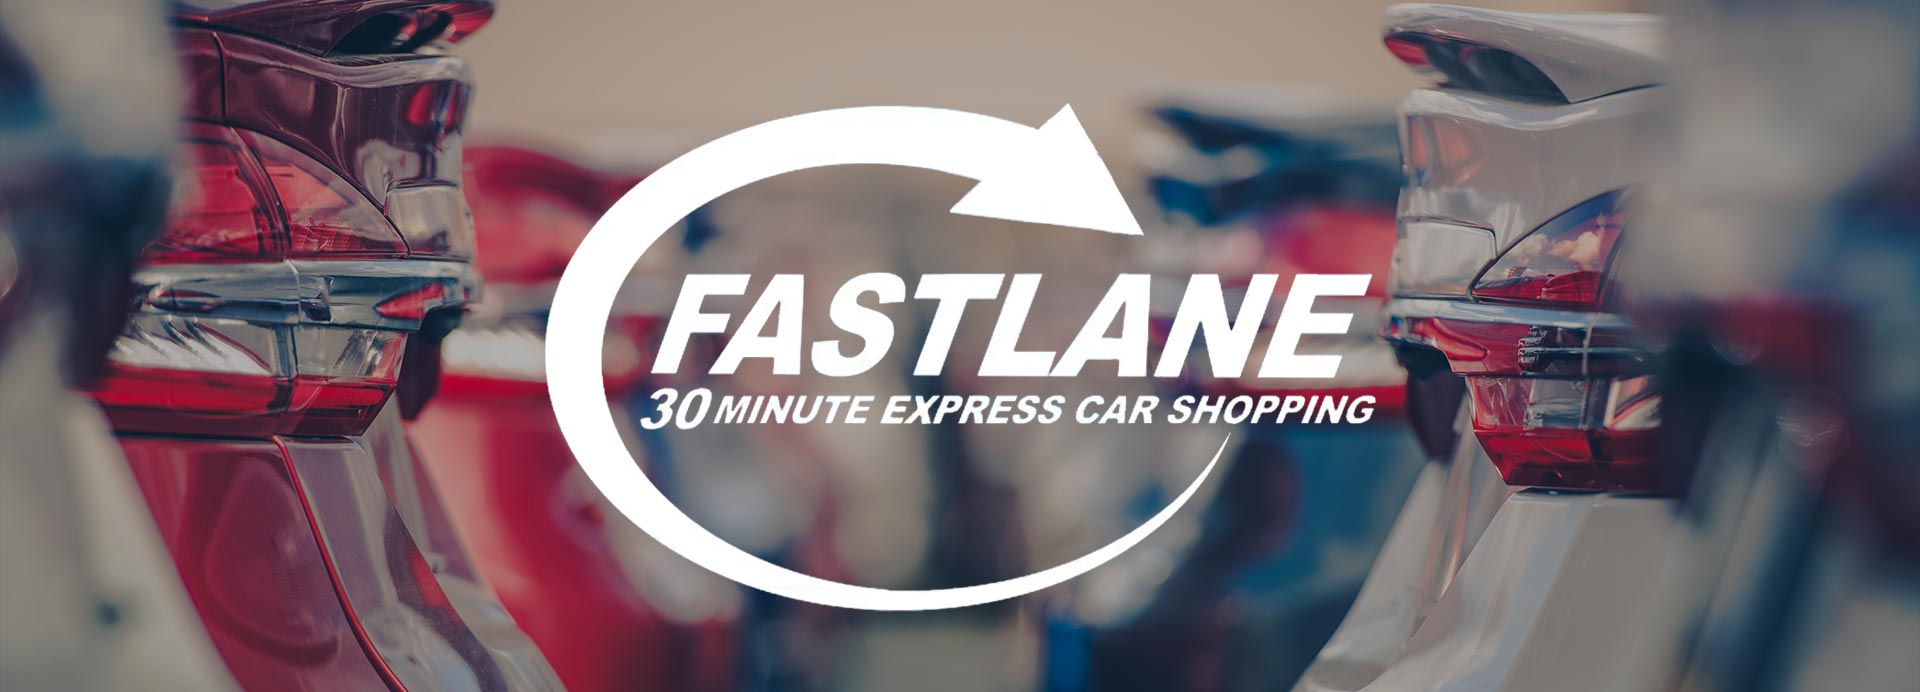 Fastlane 30-Minute Express Car Shopping Experience